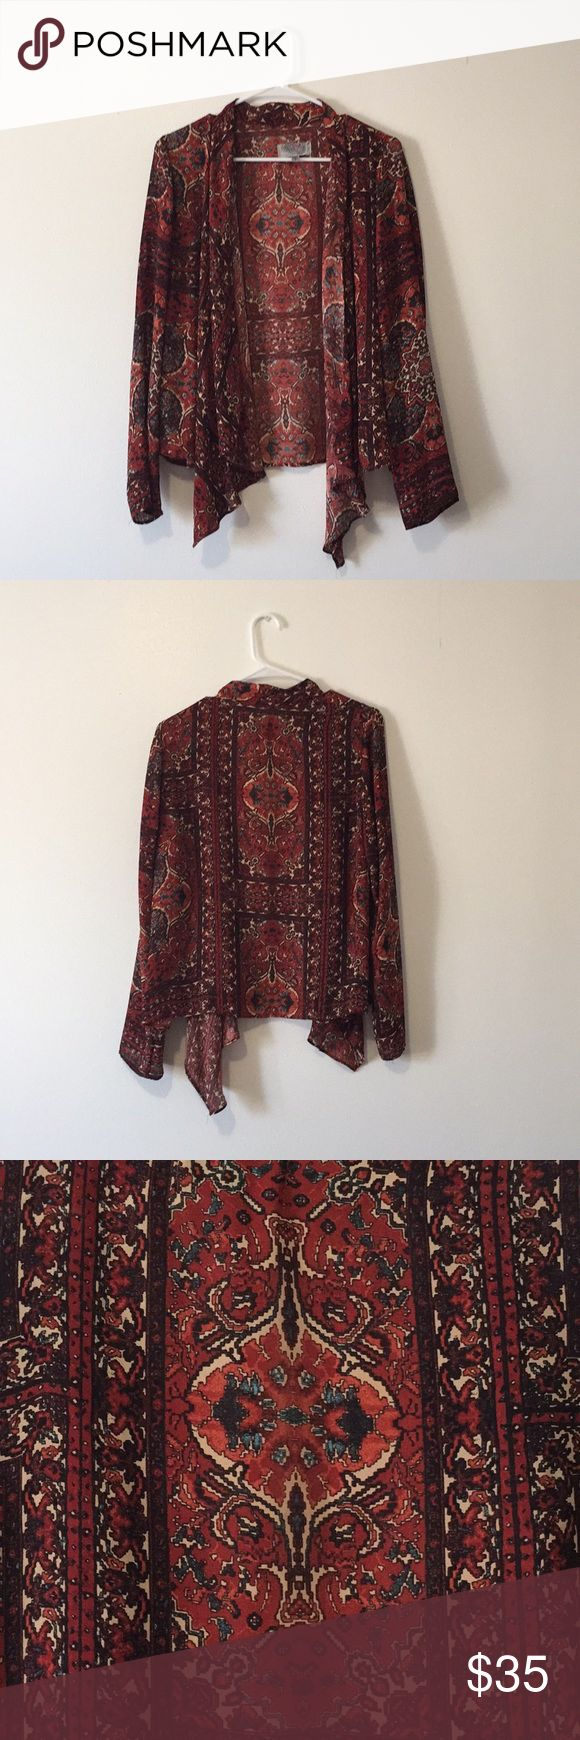 Patterned Cardigan Urban Outfitter 100% polyester patterned cardigan Urban Outfitters Sweaters Cardigans